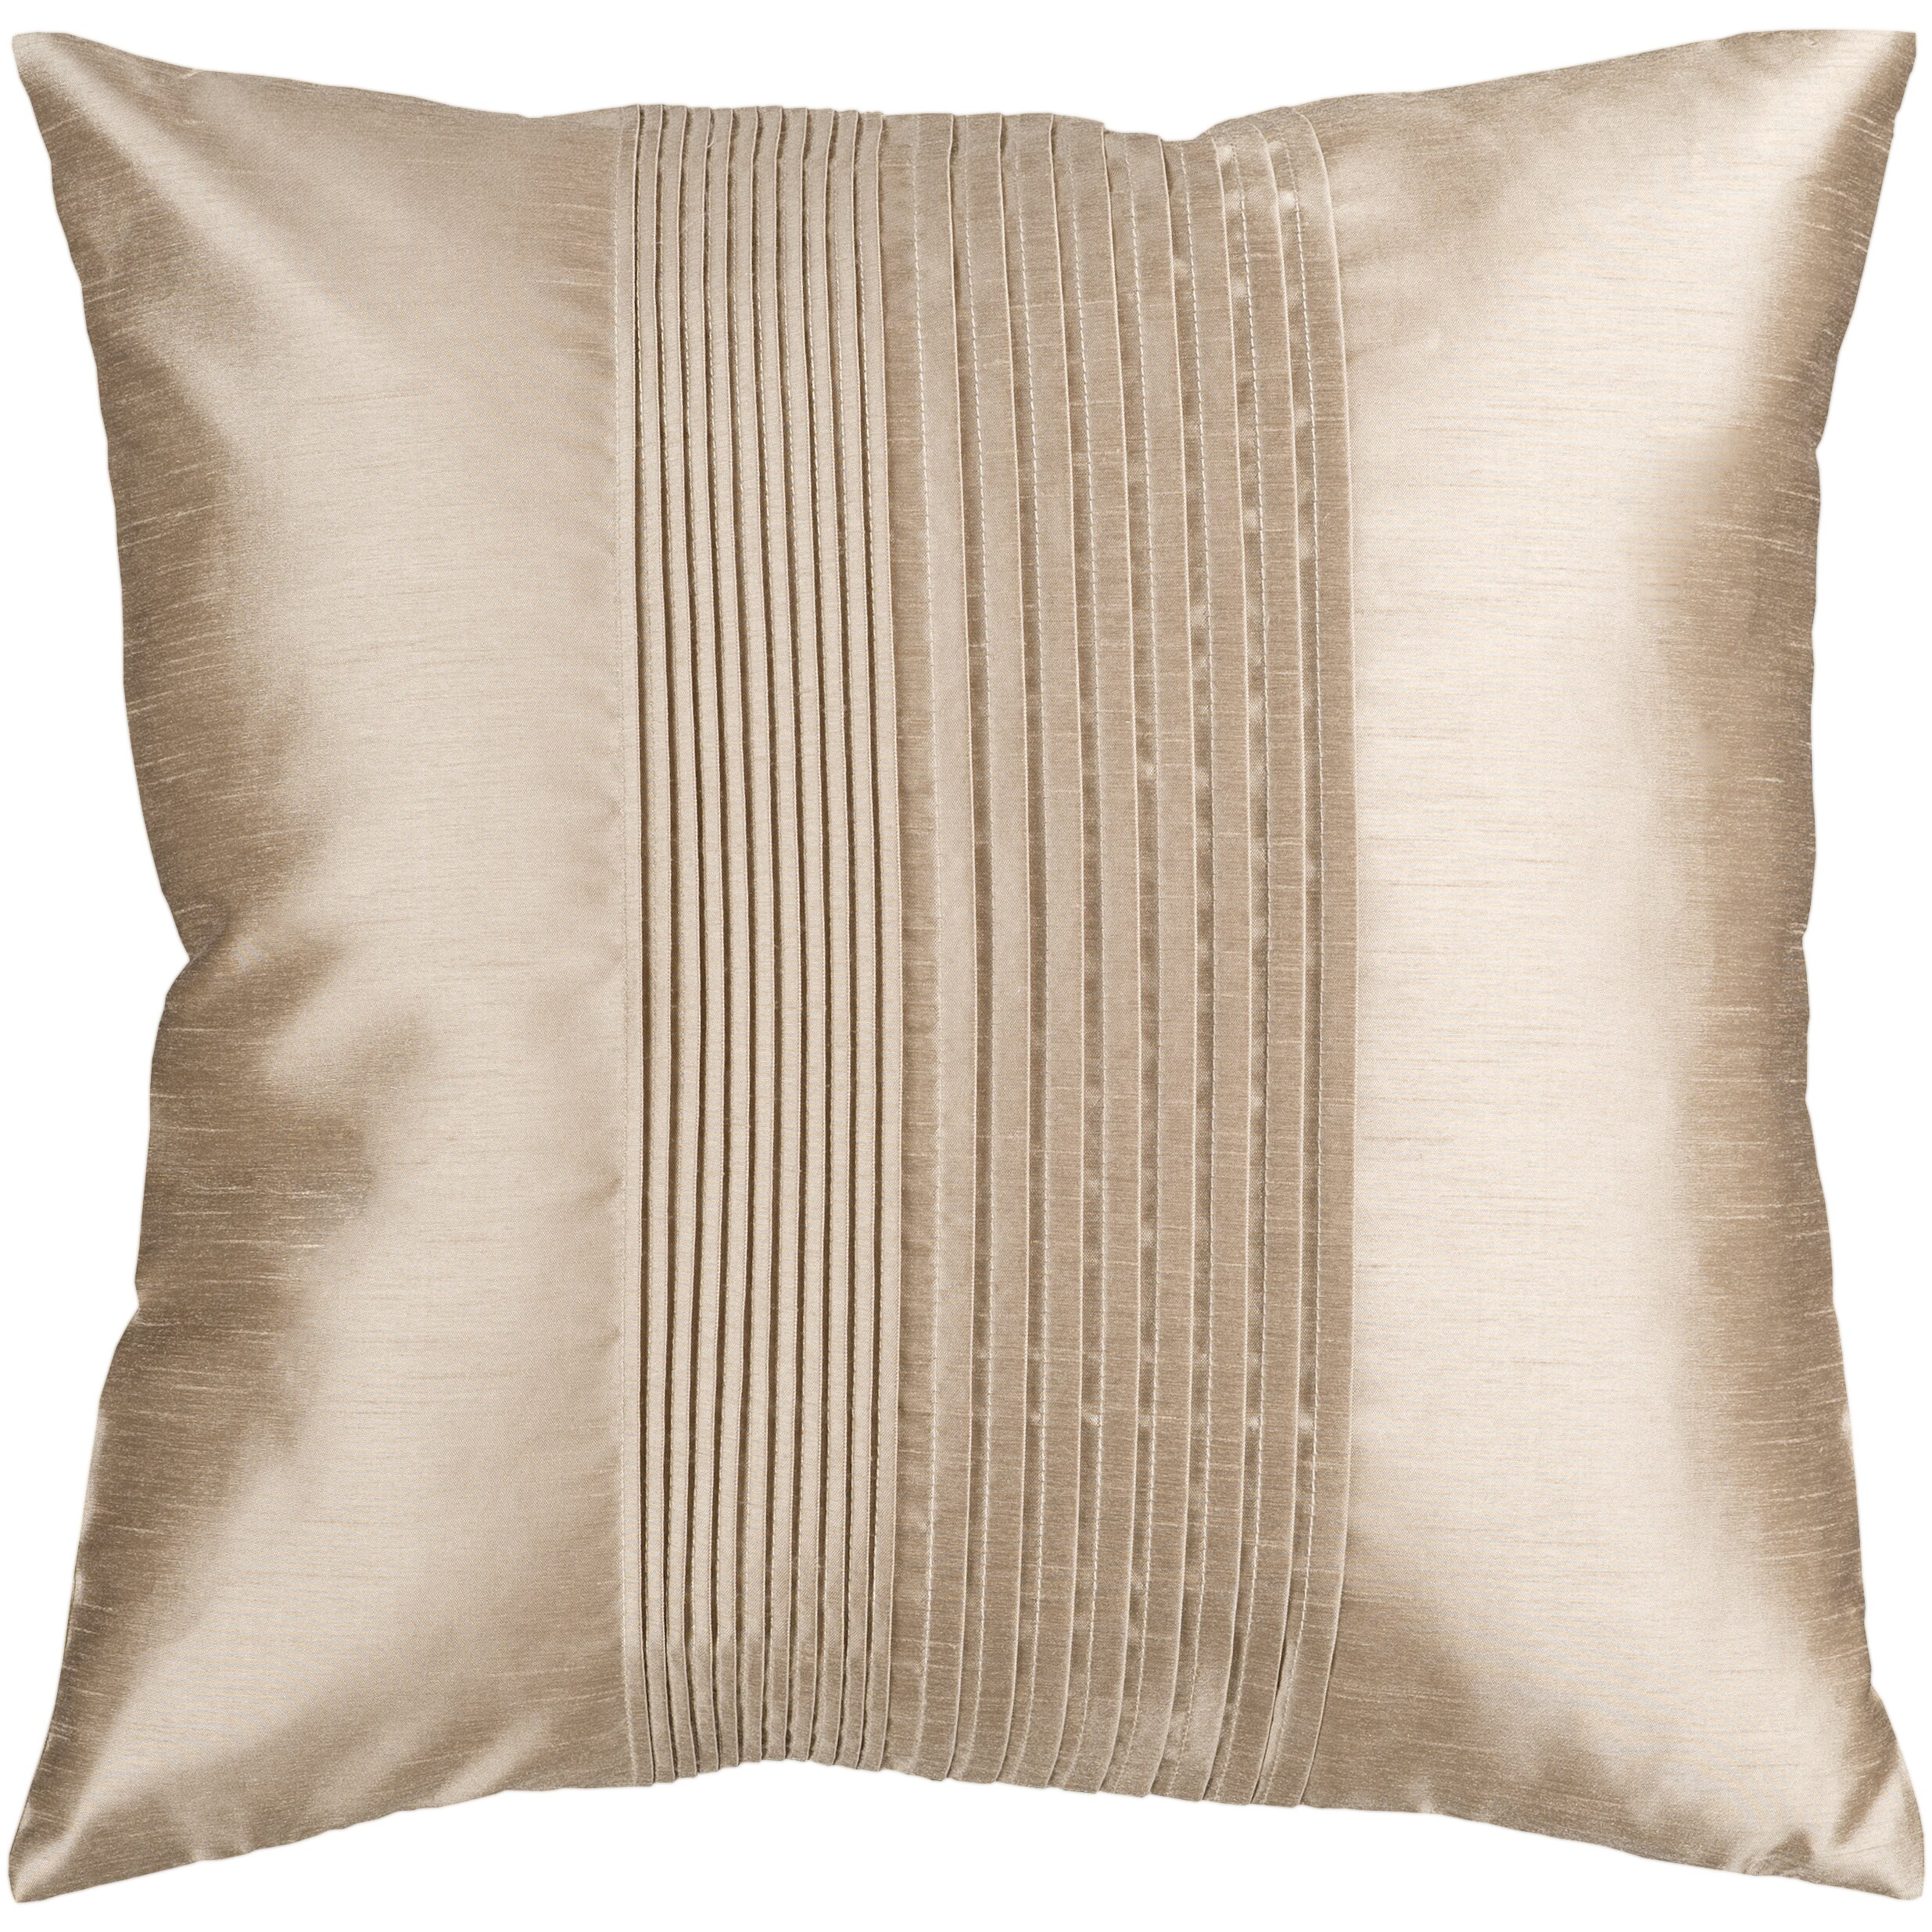 Wayfair Decorative Pillow Covers : Mercer41 Grullo Solid Pleated Throw Pillow Cover & Reviews Wayfair